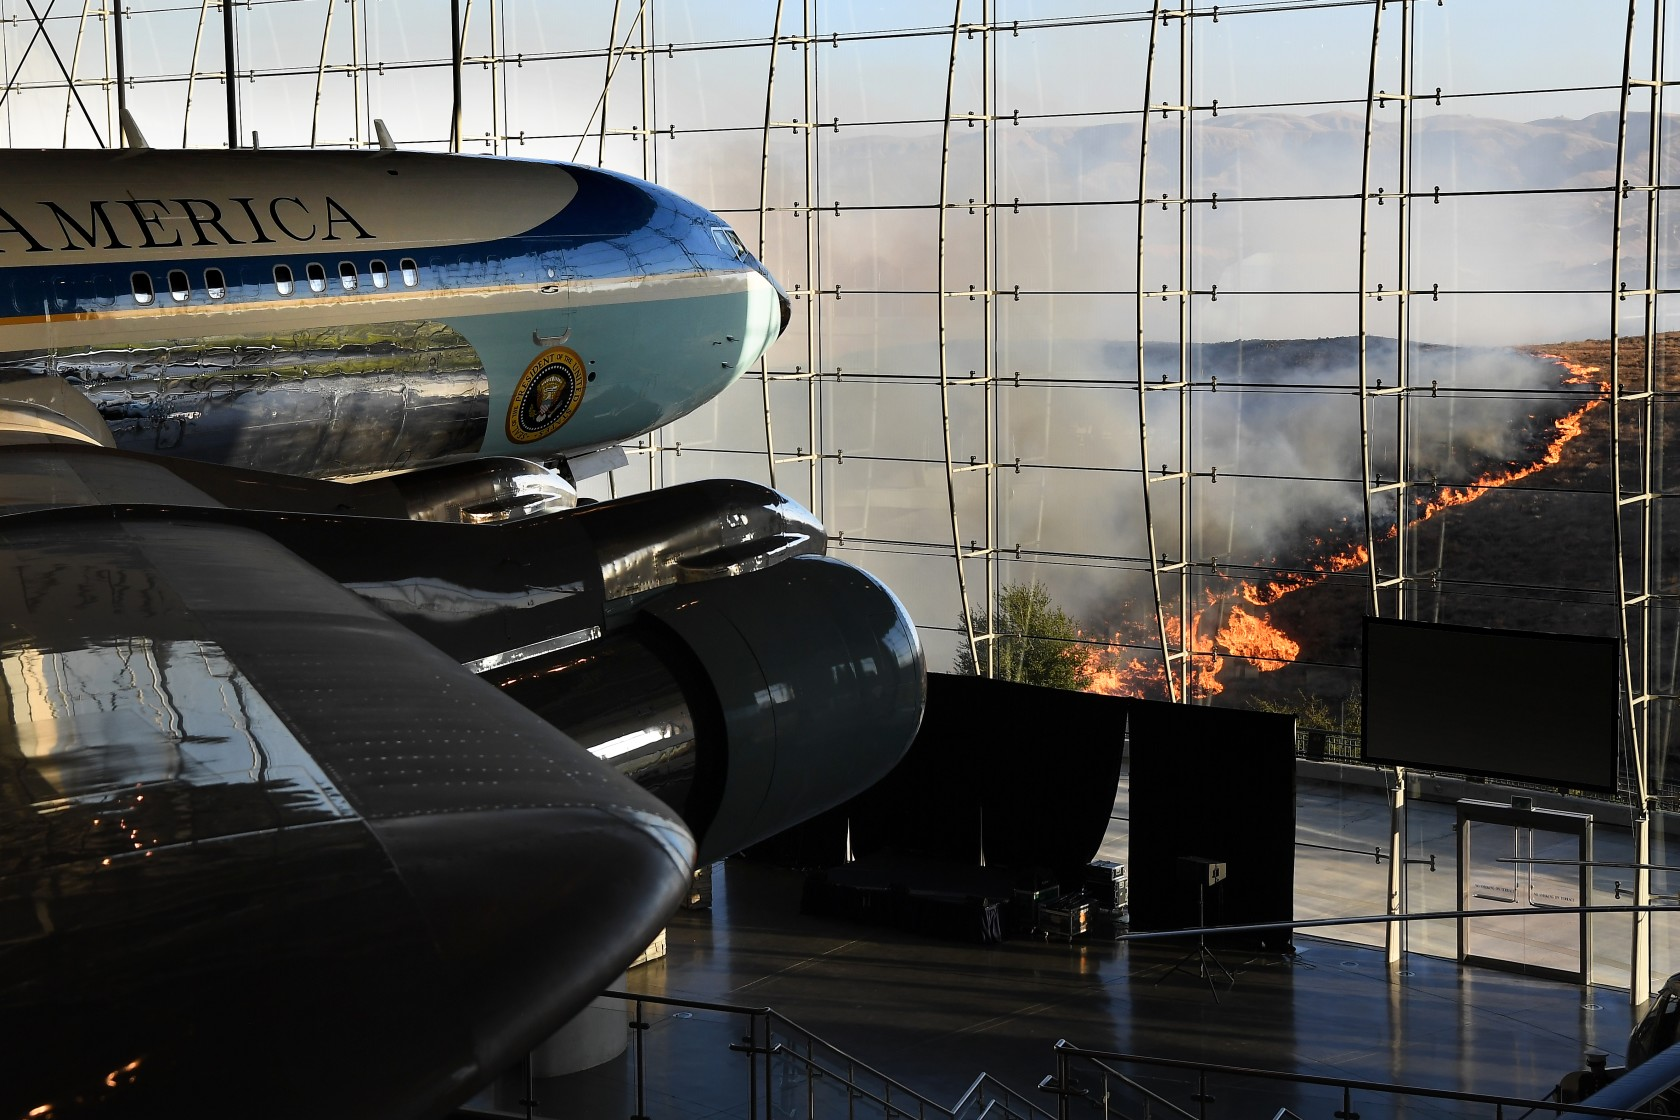 President Ronald Reagan's Air Force One sits on display at the Reagan Library as the Easy Fire burns nearby hills in Simi Valley on Oct. 30, 2019. (Credit: Wally Skalij / Los Angeles Times)